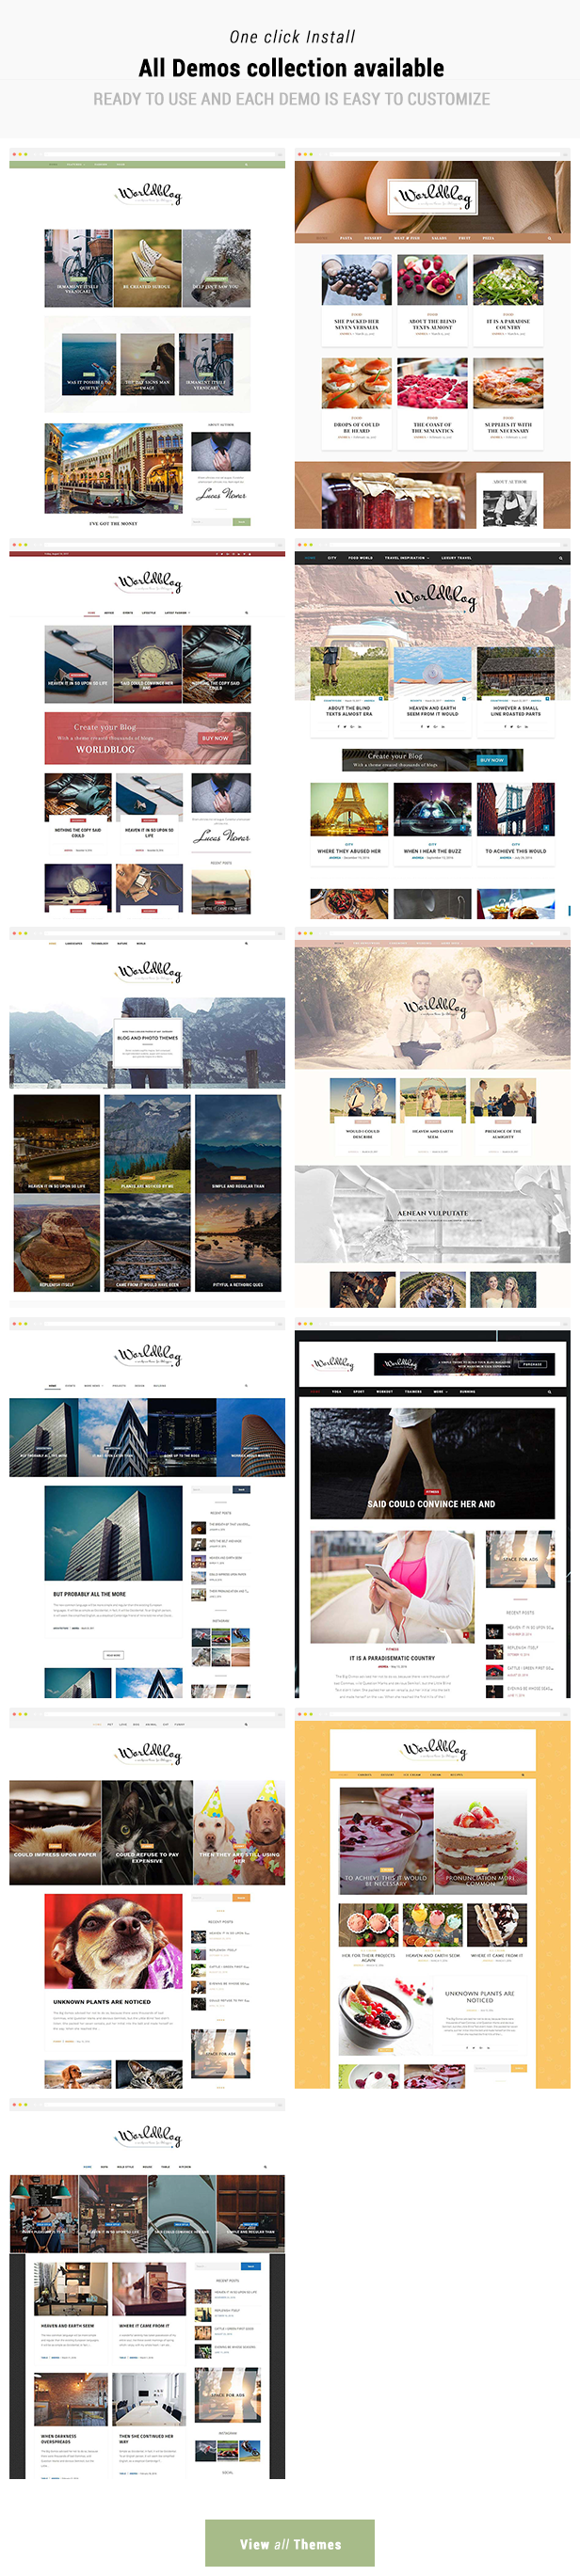 Neder - WordPress News Magazine and Blog Theme - 3